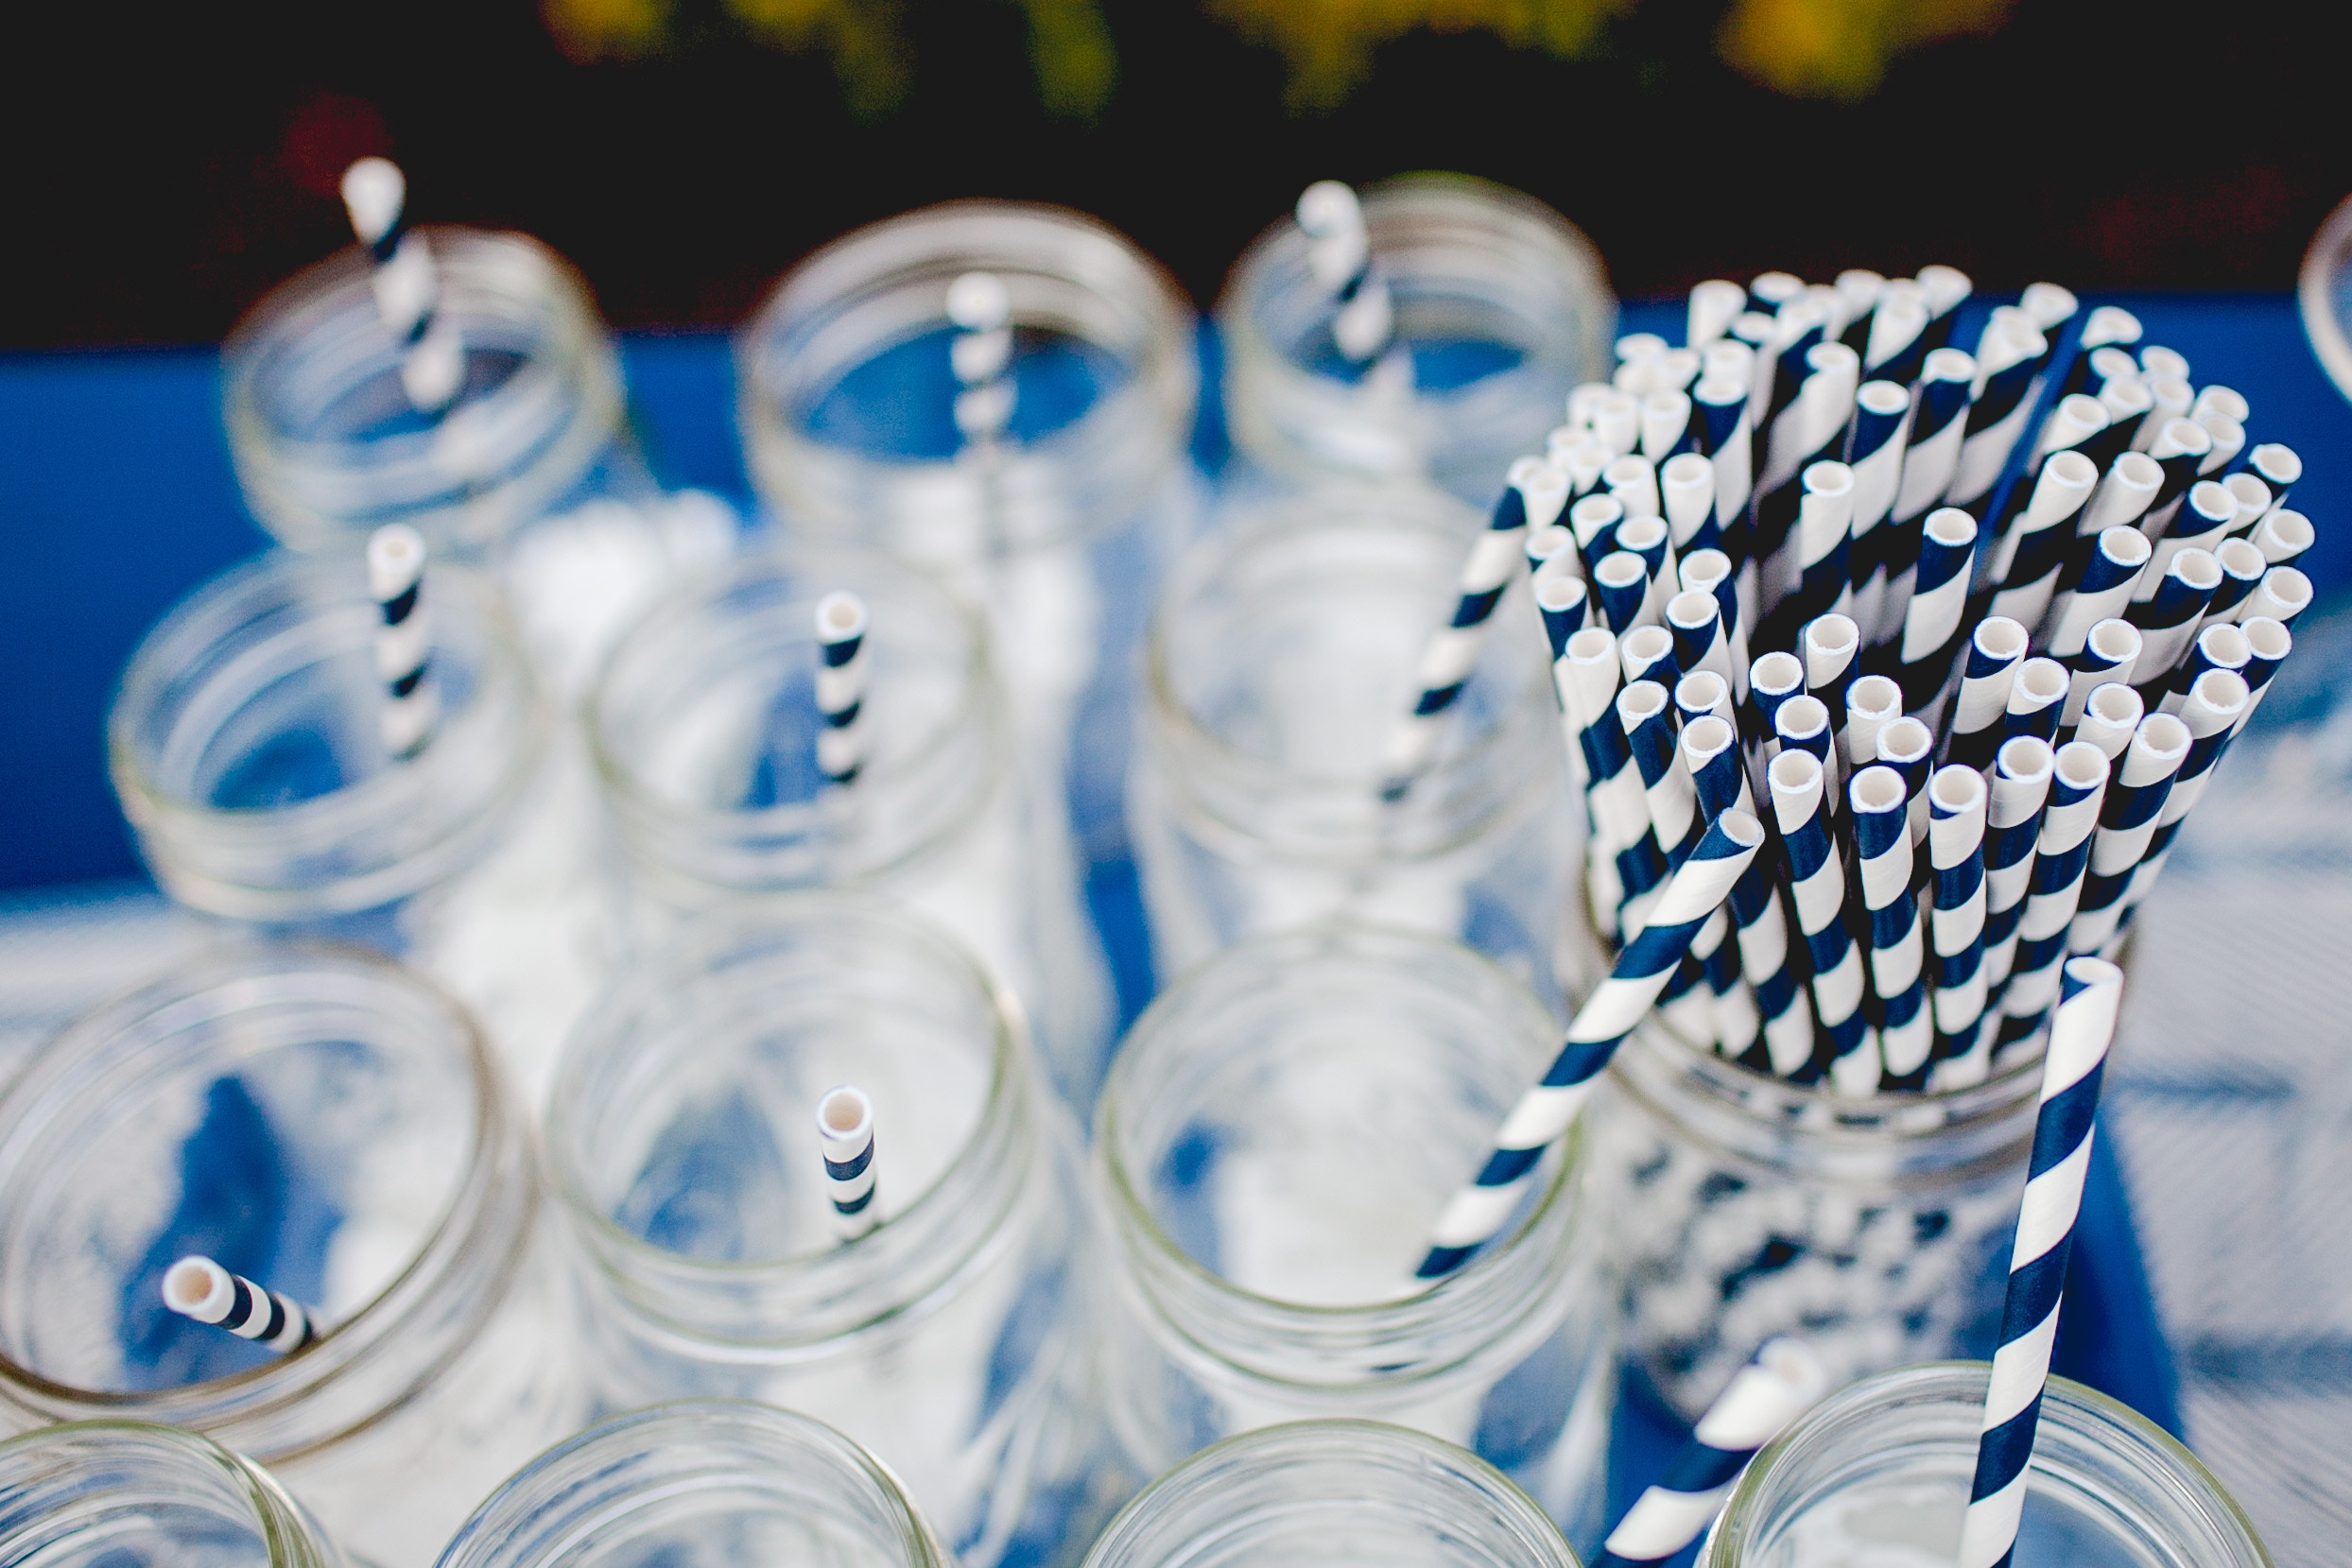 Why plastic straws are so bad for the environment